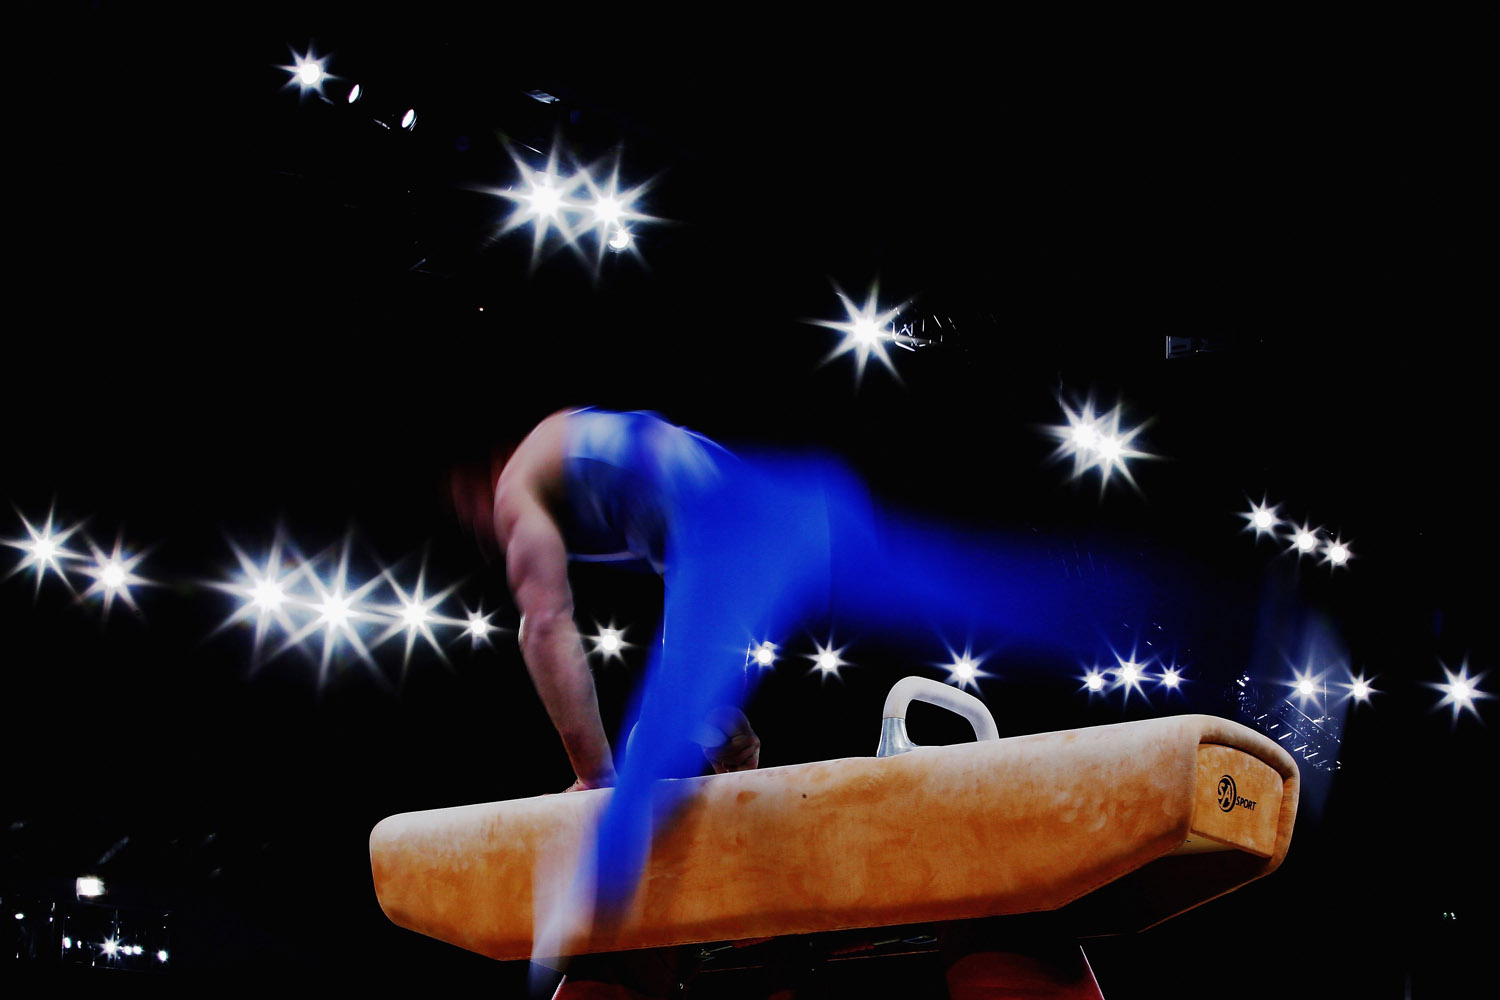 Jul. 28, 2014. Daniel Purvis of Scotland competes in the Men's Team Final and Individual Qualification at SECC Precinct during day five of the Glasgow 2014 Commonwealth Games in Glasgow, United Kingdom.